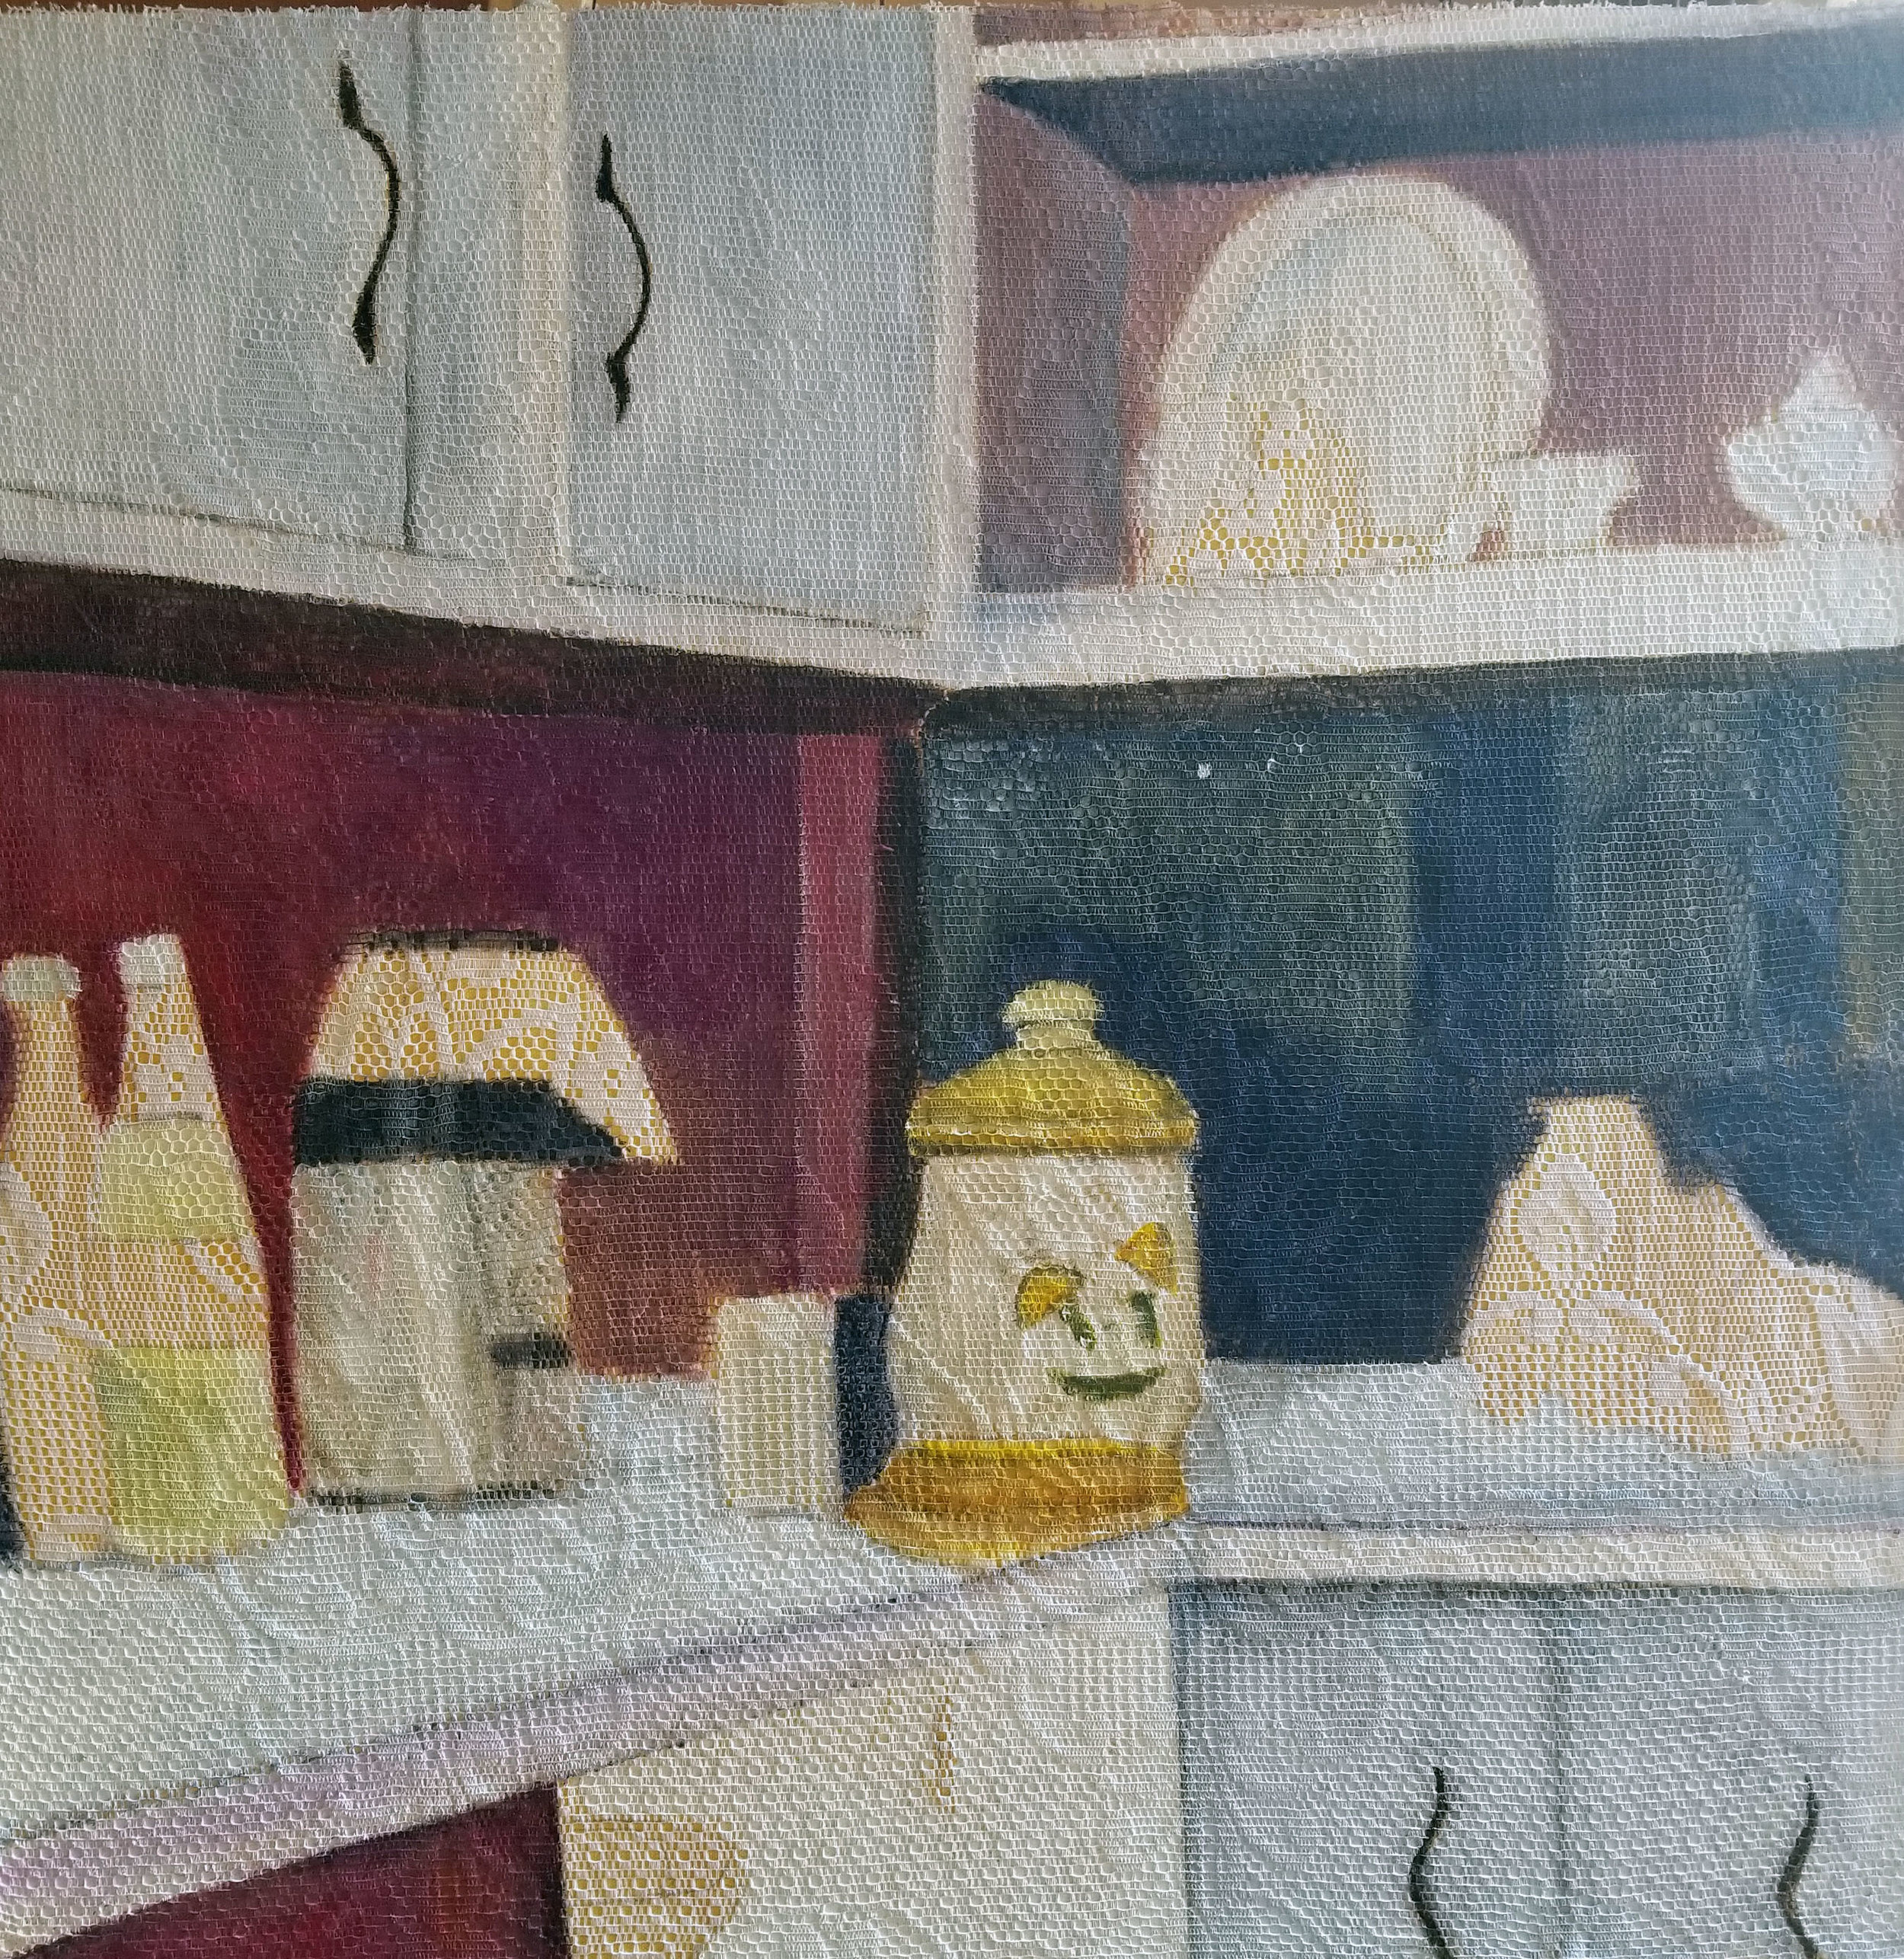 Kitchen Clutter.jpg